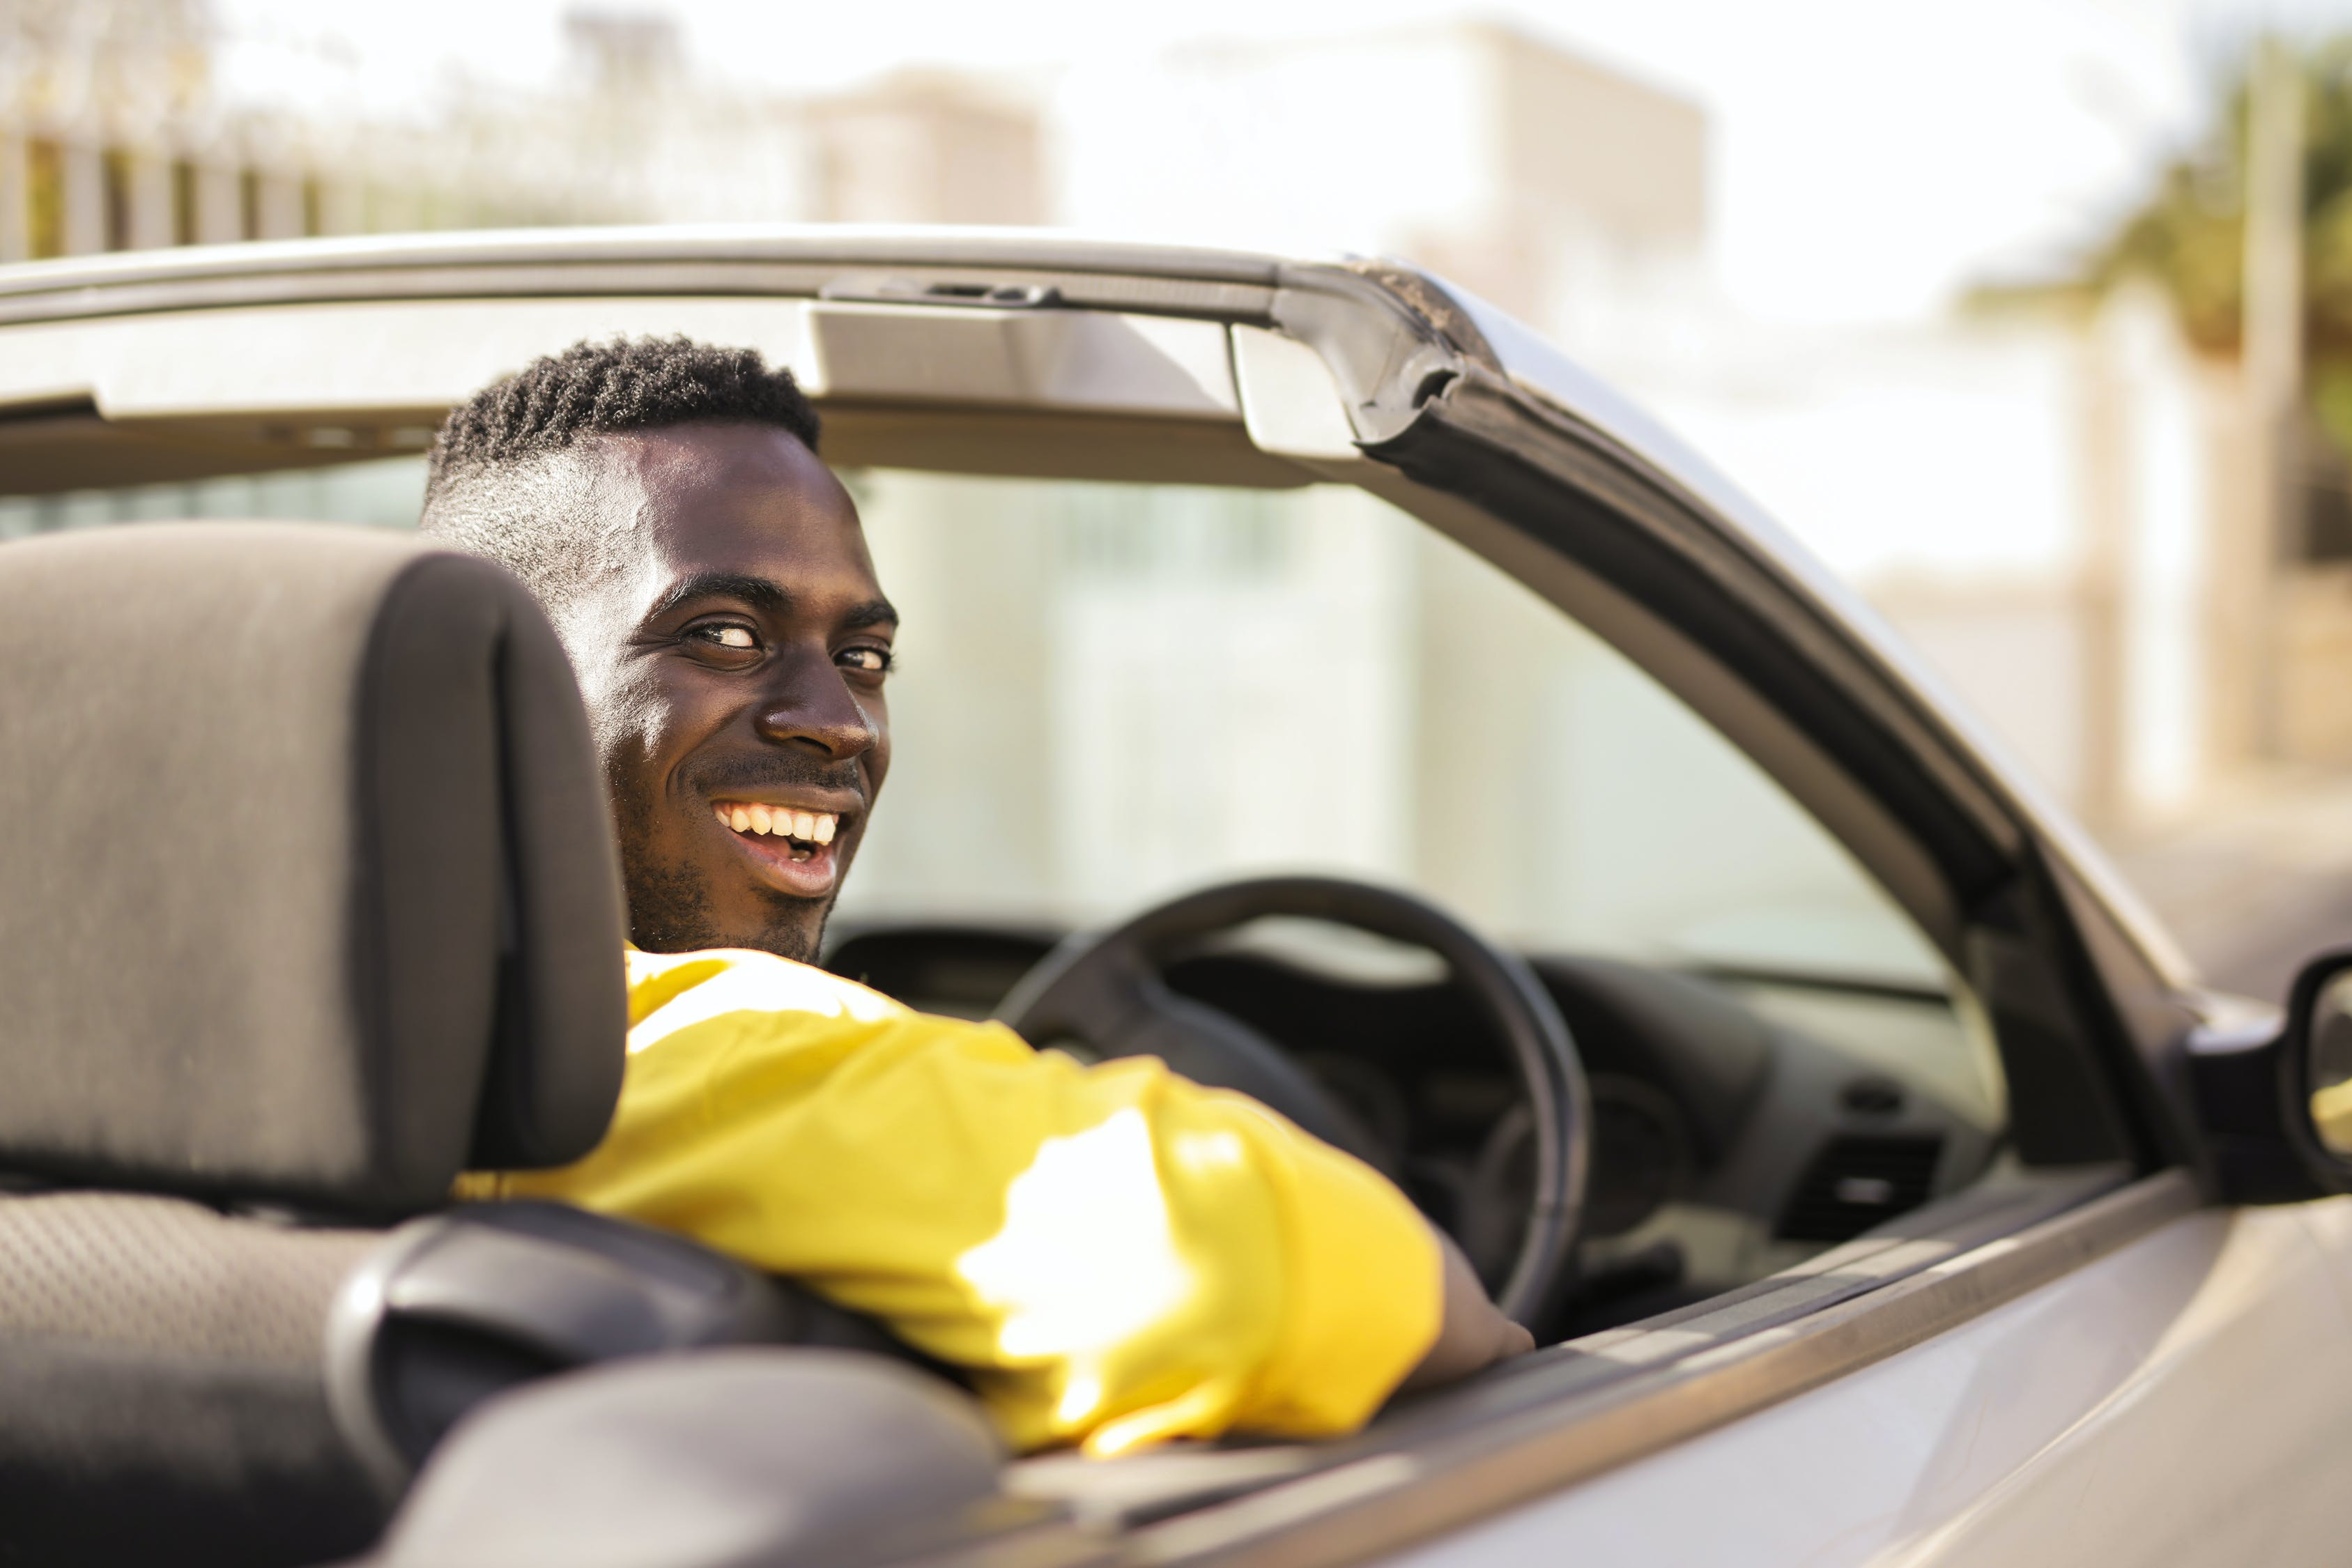 Man in Yellow Shirt Driving A White Luxury Car